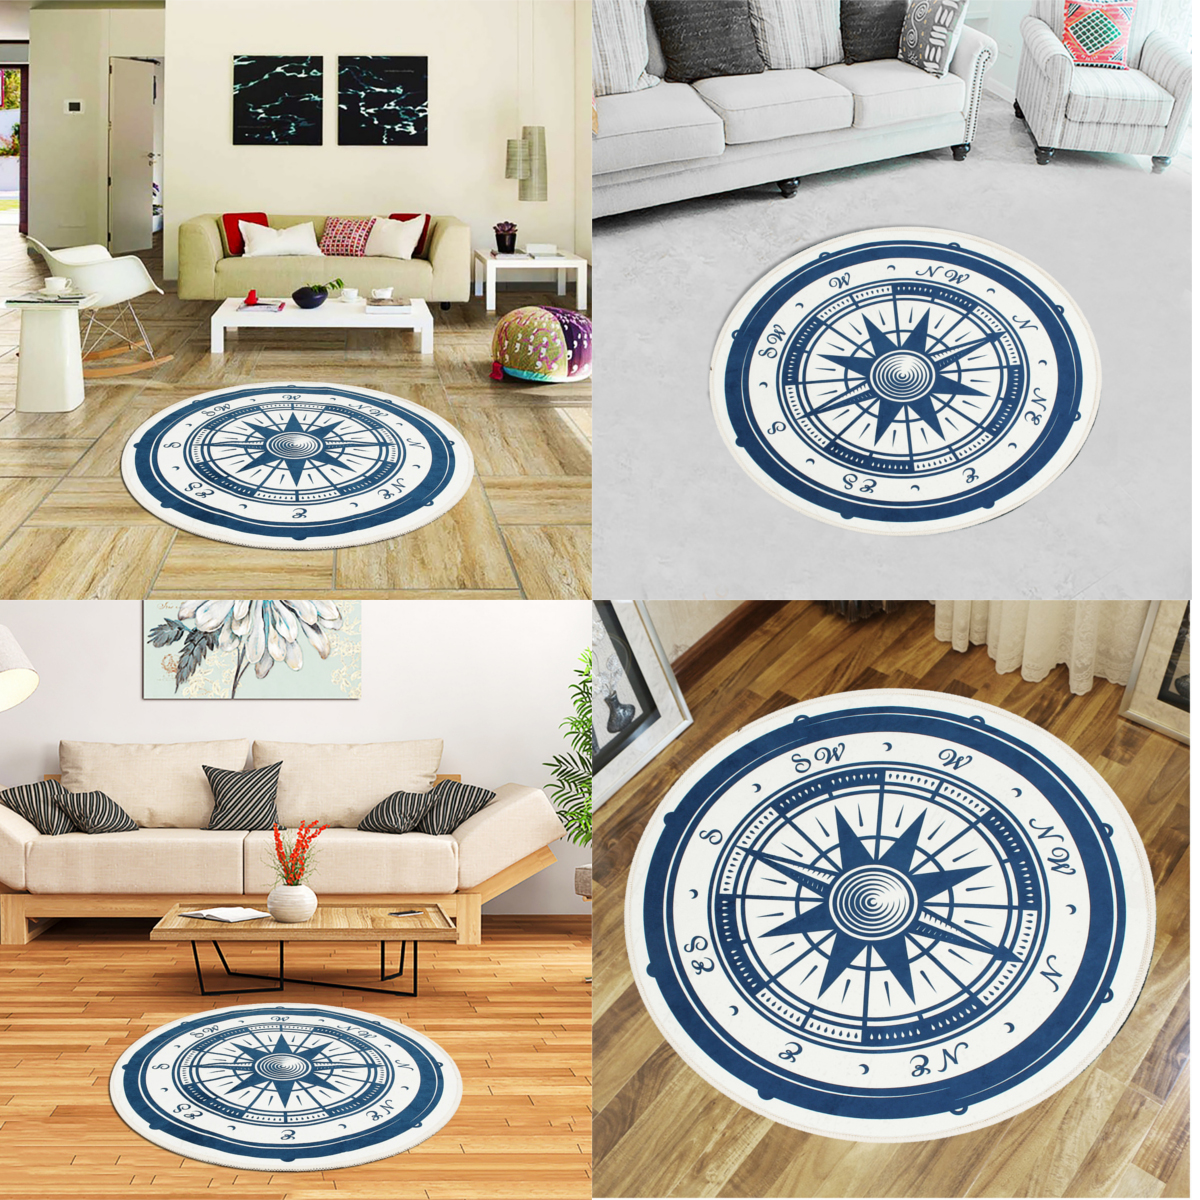 Us 11 35 29 Off Home Textile Round Door Mat Floor Mat Vintage Nautical Anti Slip Polyester Carpet For Children Bathroom Livingroom Outdoor Rug In